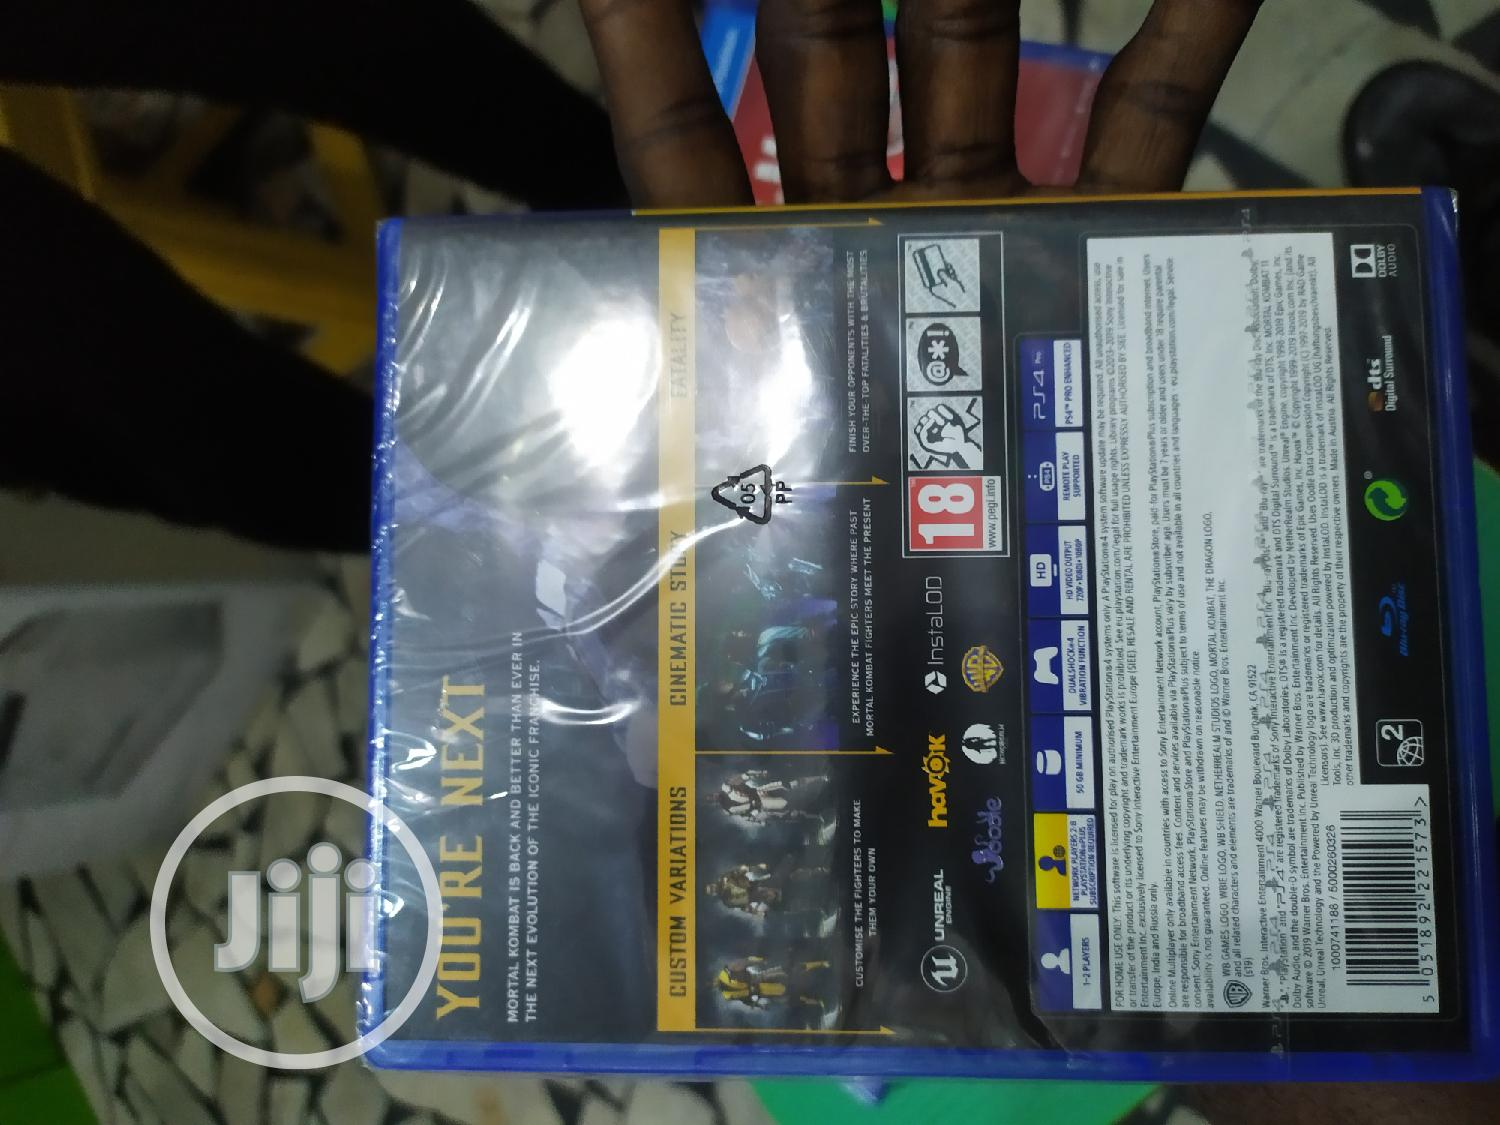 Mortal Kombat 11 | Video Games for sale in Apapa, Lagos State, Nigeria